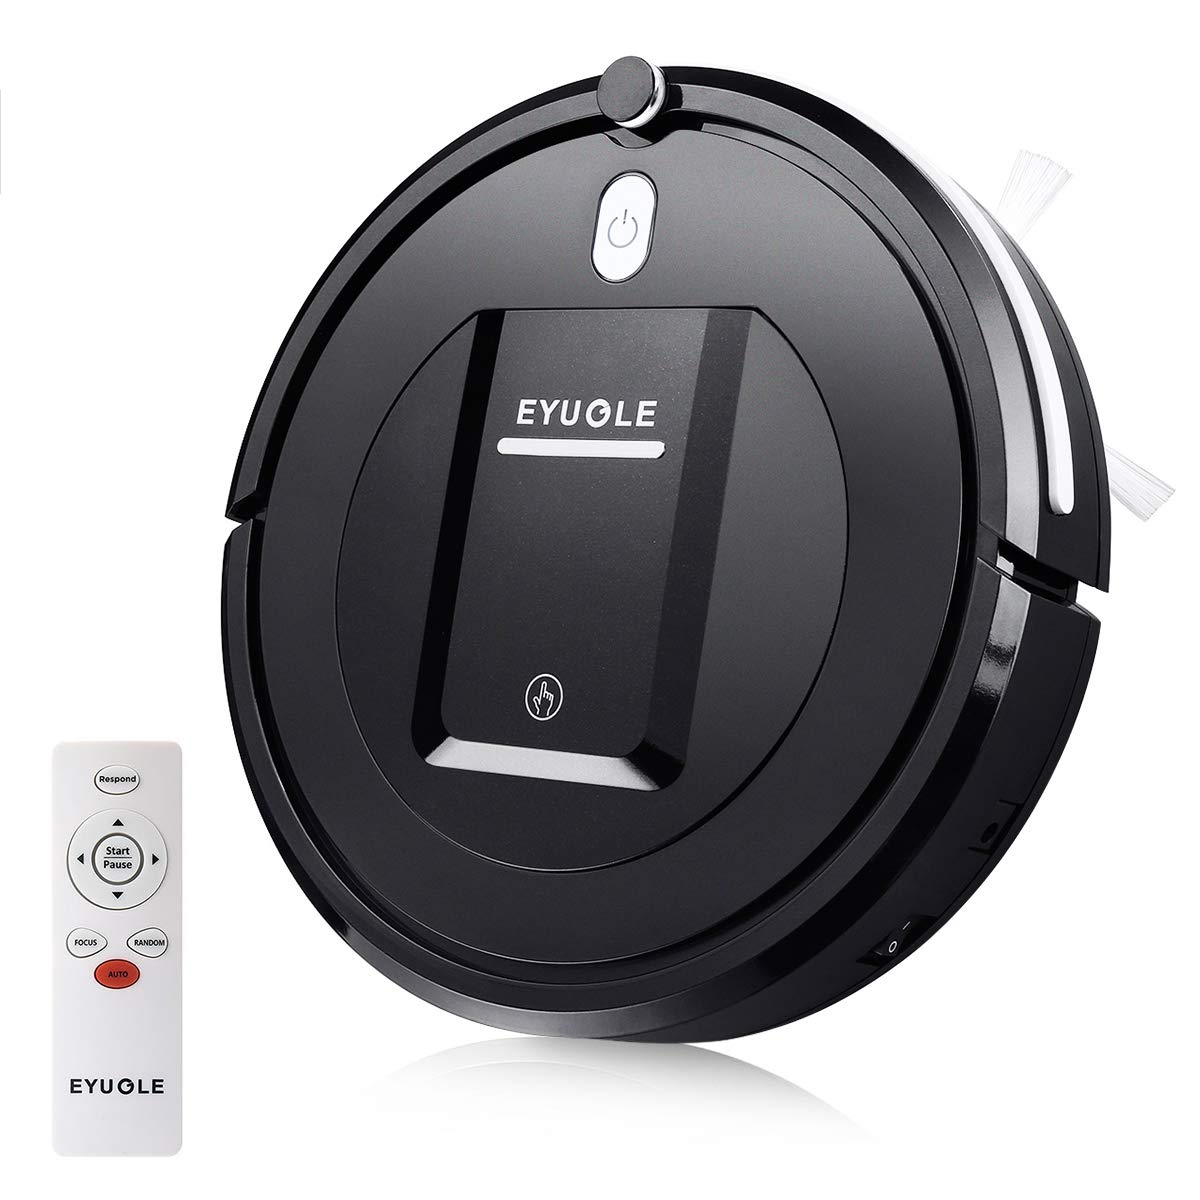 EYUGLE Robot Vacuum Cleaner with Slim Design, Anti-Drop Sensing Tech, Higher Suction Robotic Home Cleaning for Hard Floor, Pet Hair